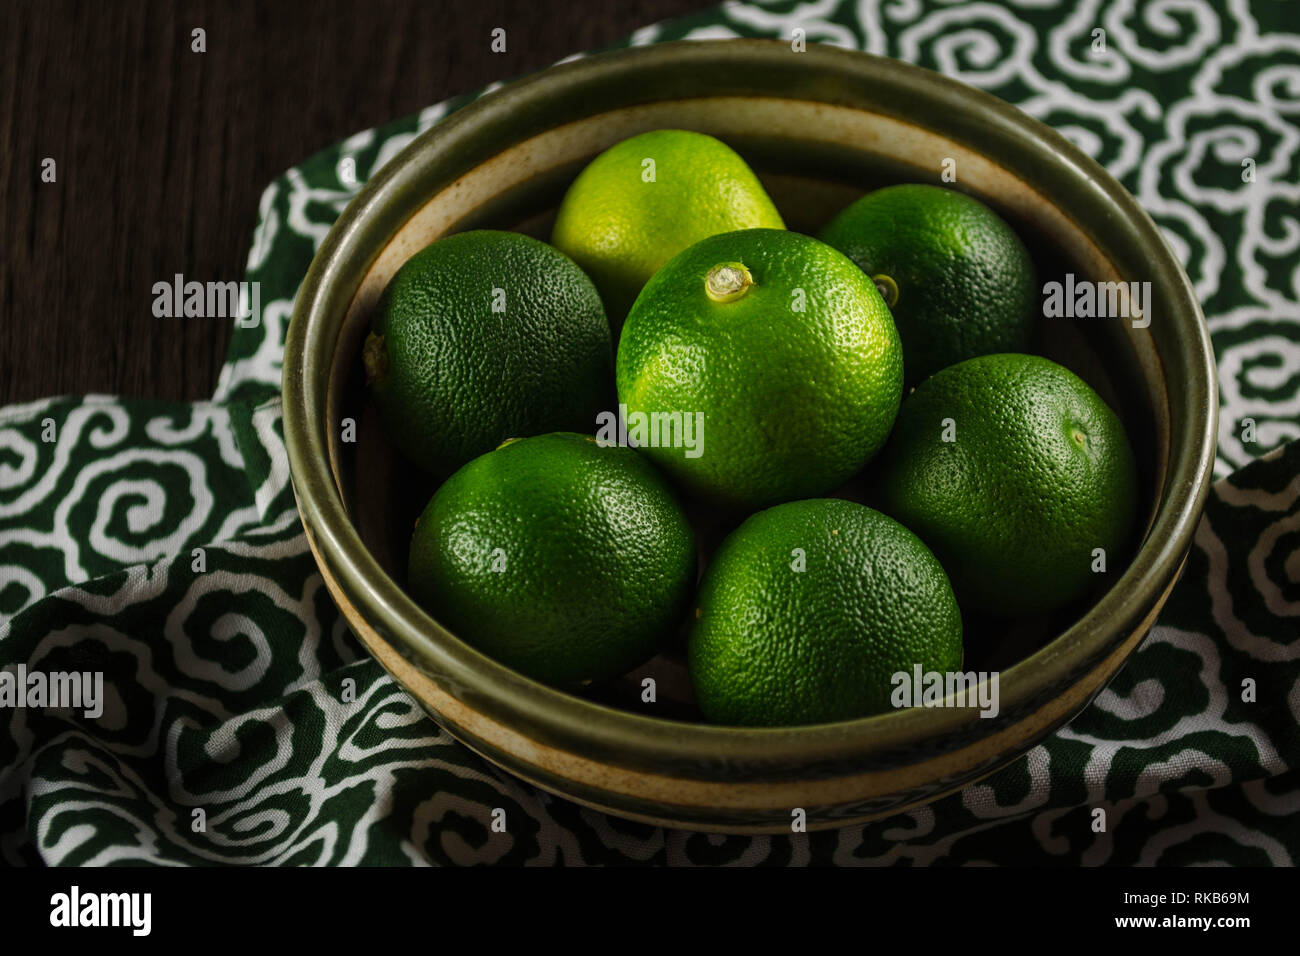 Sudachi - a small, sour citrus used in Japanese cuisine. The fruits go from deep green to bright yellow as they ripen, but remain sour. - Stock Image